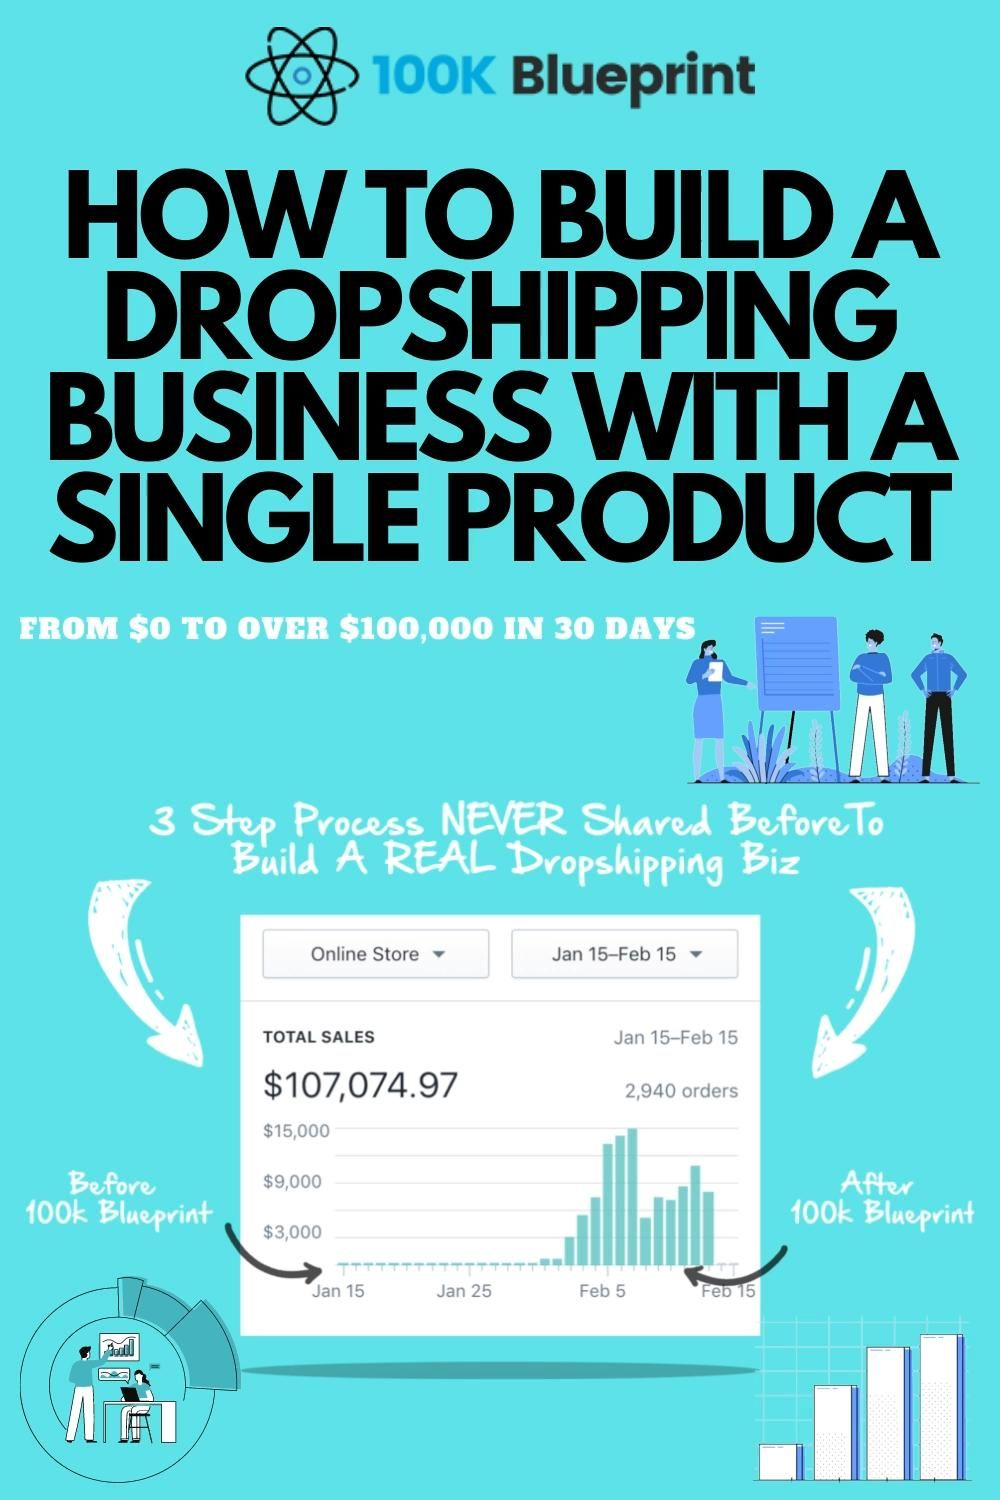 How To Build A Dropshipping Business With A Single Product Video Drop Shipping Business Dropshipping Blueprints